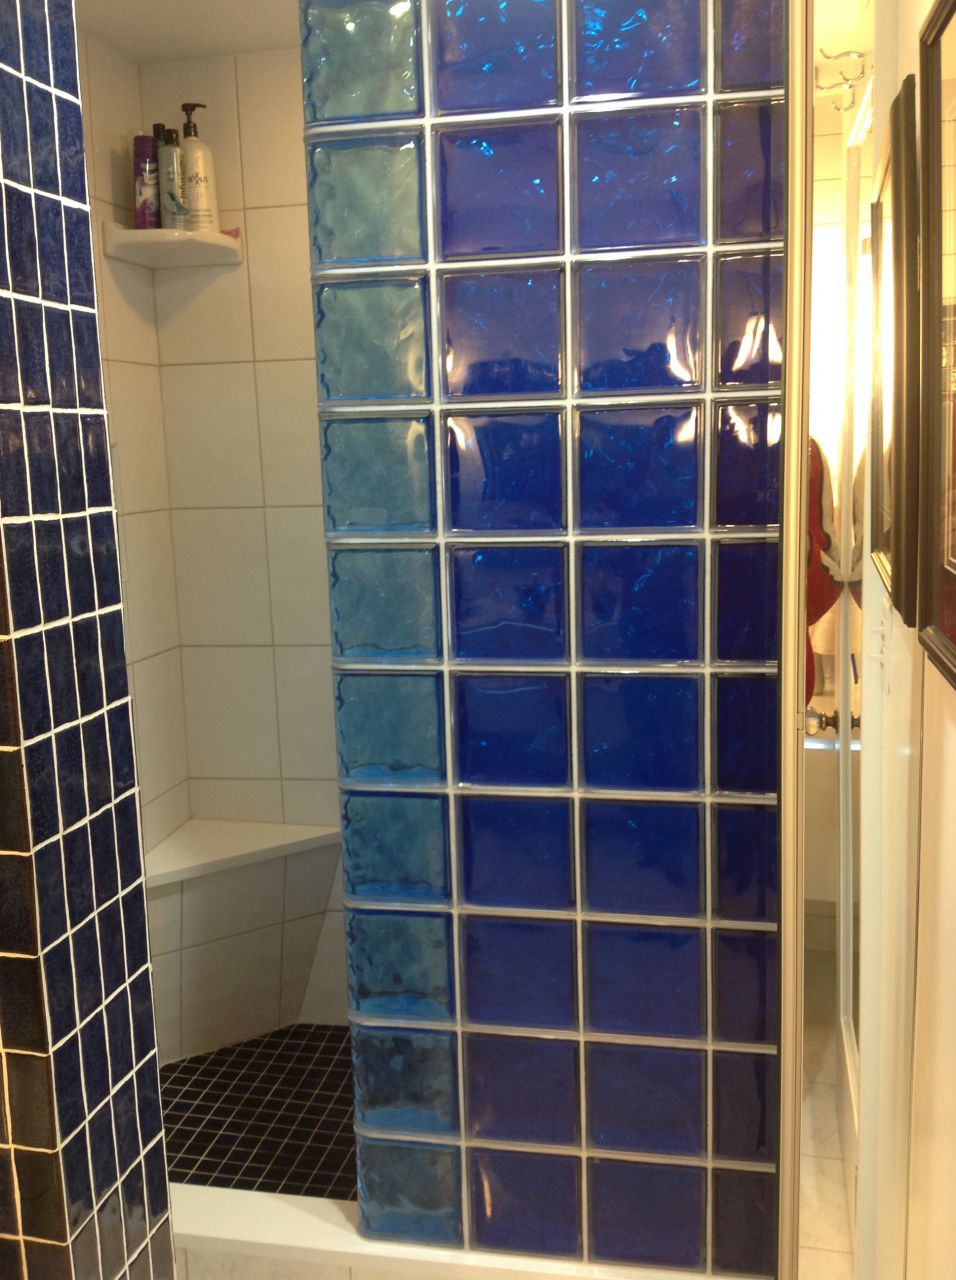 How to use lighting mirrors vanities and color in a Condo Bath Remodeling Cleveland Heights Ohio